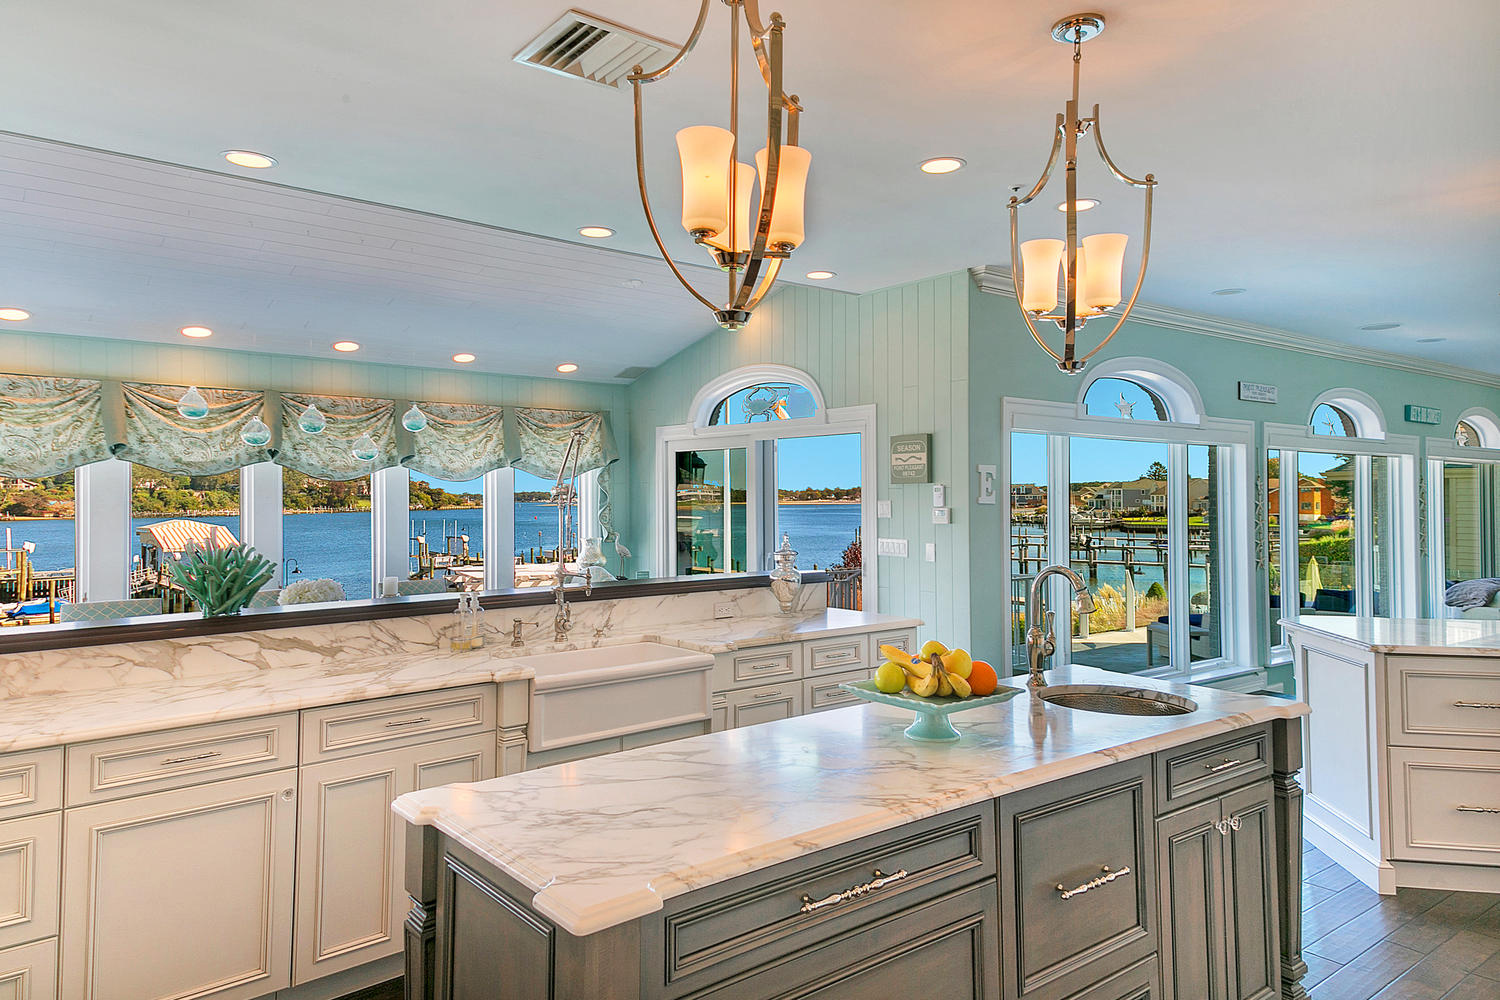 Custom Kitchens Bathrooms and more at Design Line Kitchens in Sea Girt NJ